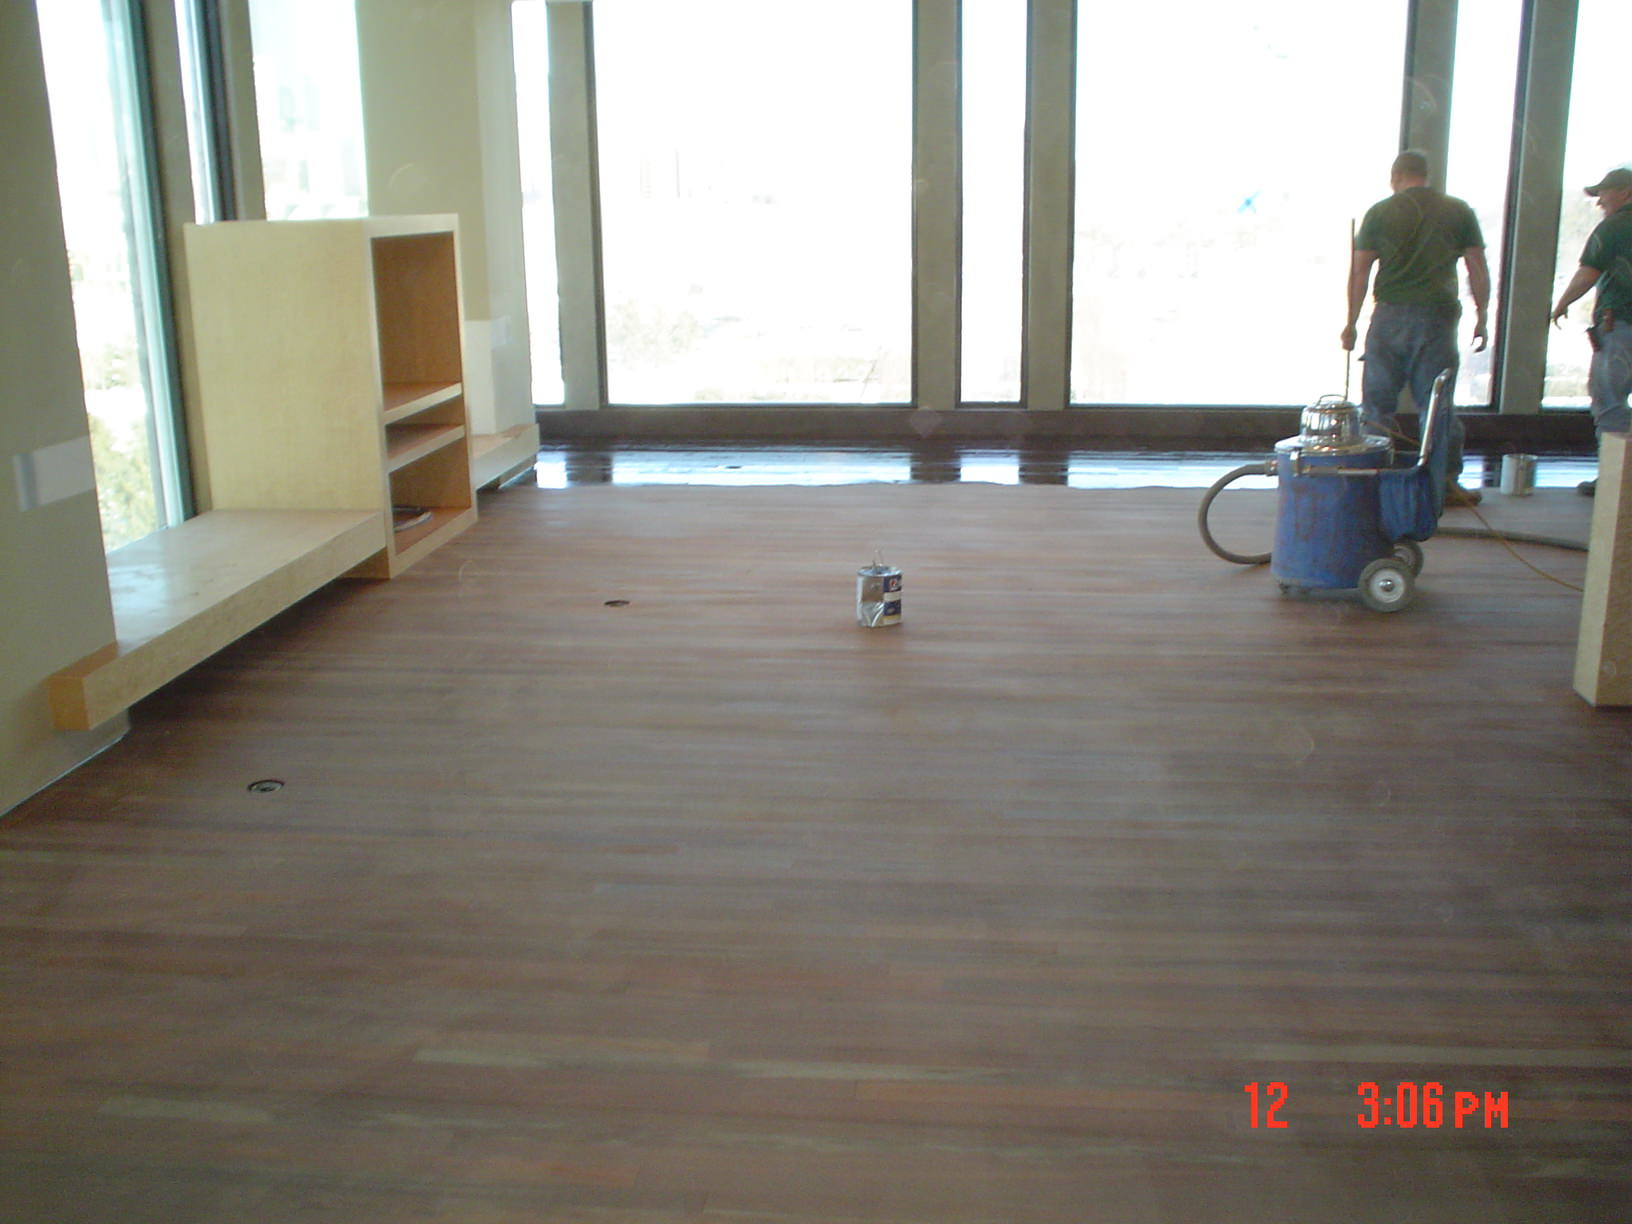 hardwood floor refinishing lynchburg va of gym floor repair and servicehhi within gym flooring maintenance recommendations if you have ever broom swept a gymnasium floor you understand how much dust dirt sand marring scratches